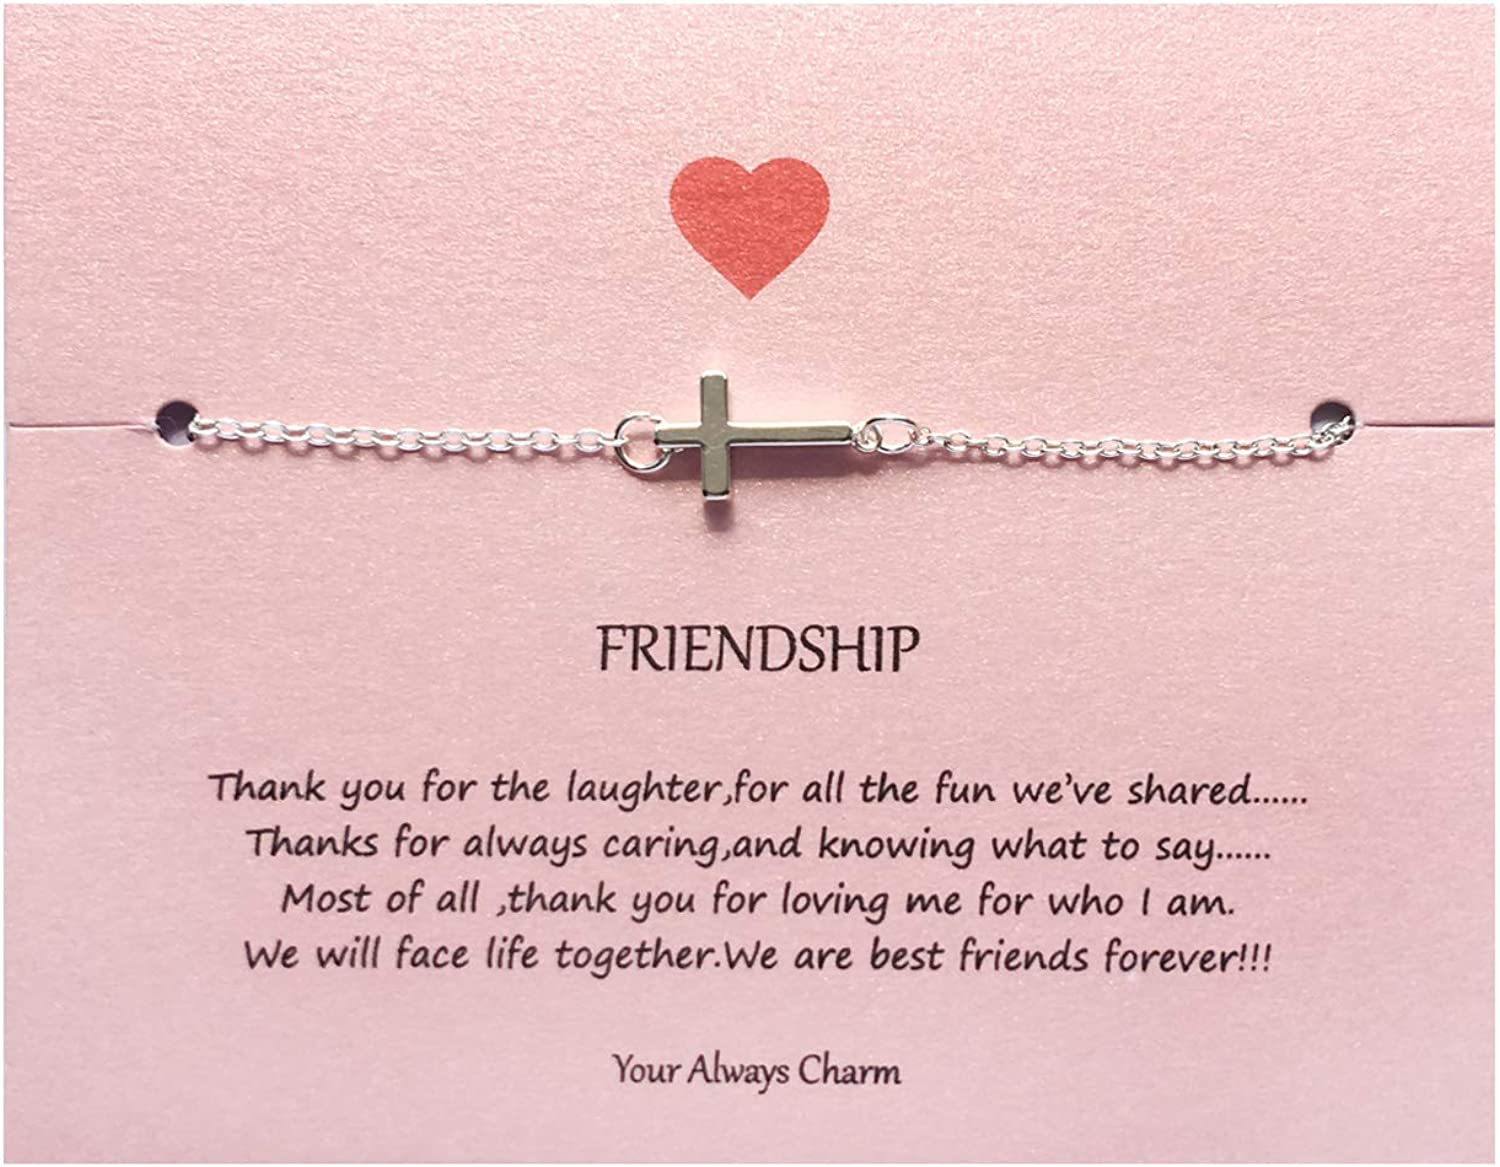 Your Always Charm Faith Cross Bracelet,Religious Meaningful Gifts for Best Friend